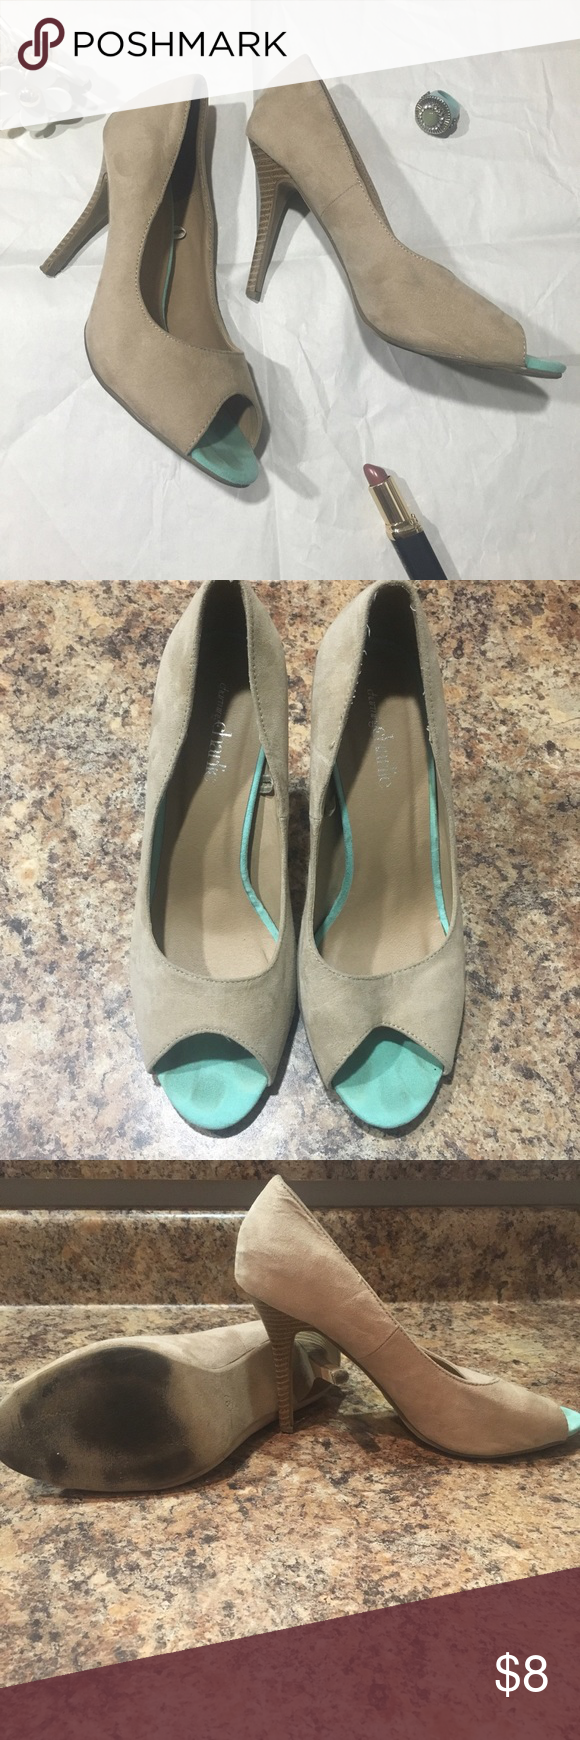 Charming Charlie • Tan & Blue Peep Toe Heels This is a pair of Charming Charlie Tan & Blue Peep Toe. Great Heels for the summer. Has a turquoise color on the inside of the heel that shows through the peep toe. Comfortable and good condition. Size 9. Charming Charlie Shoes Heels